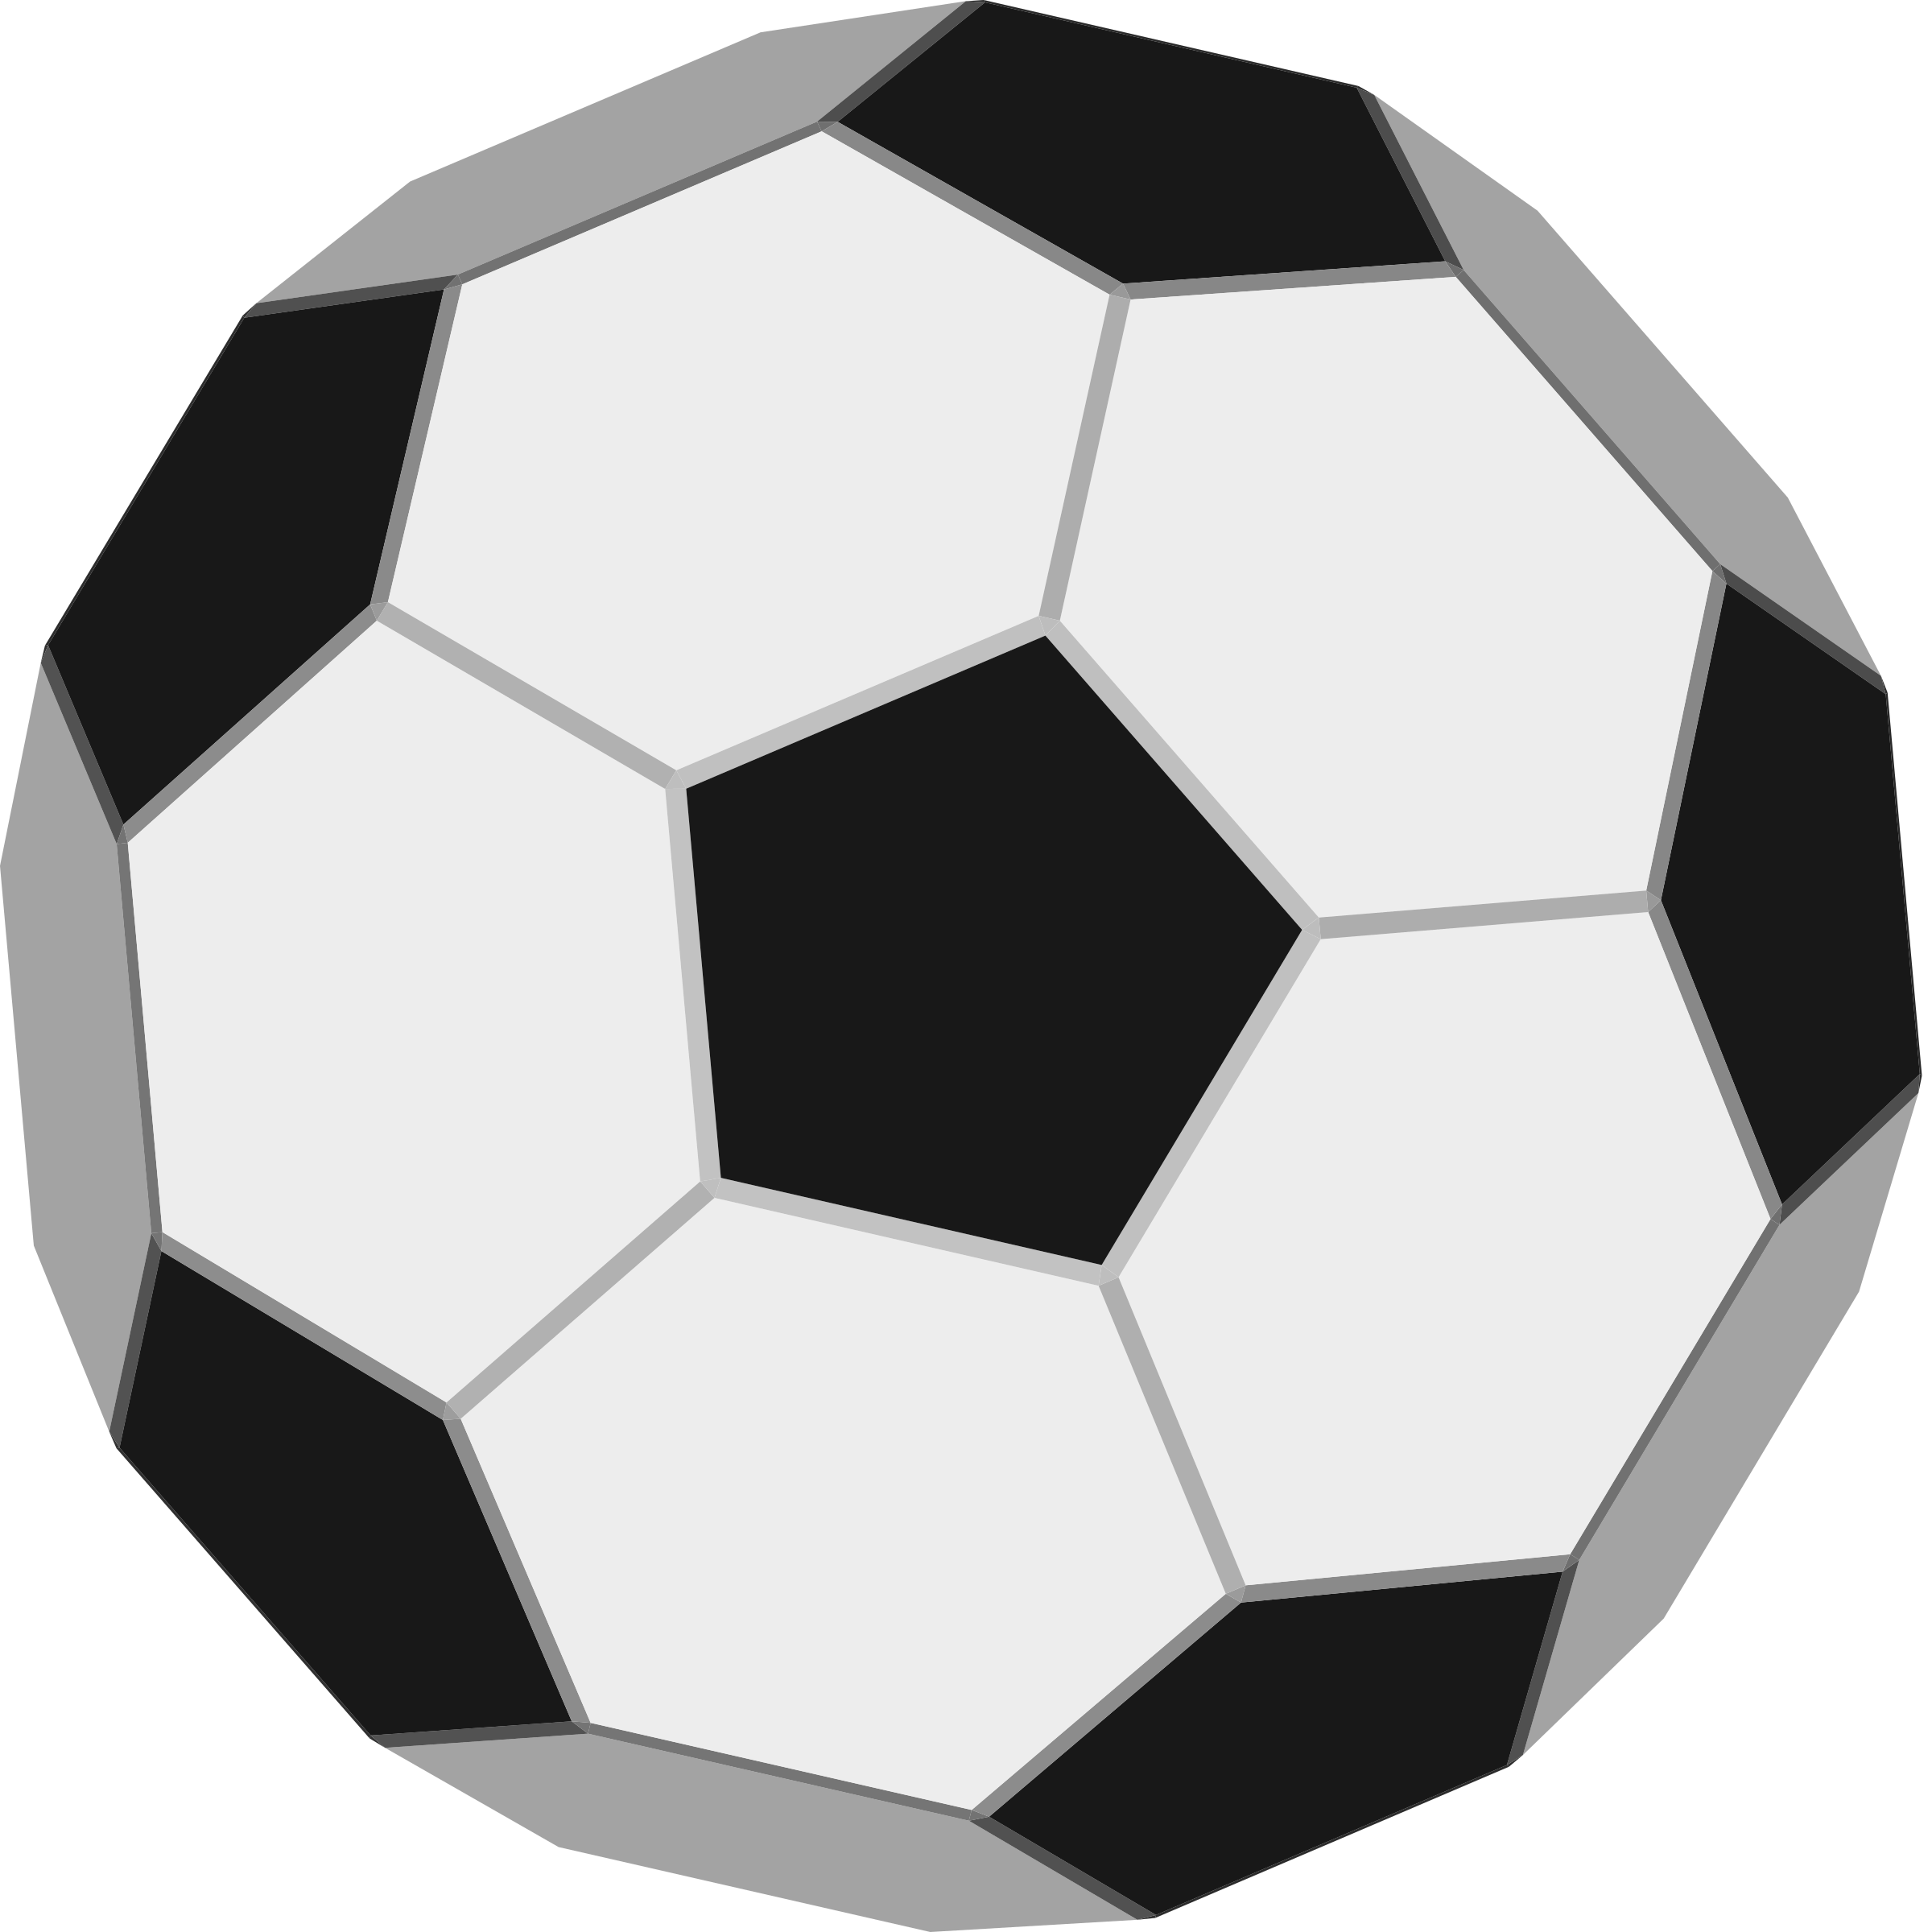 Free Easy Football Cliparts, Download Free Clip Art, Free